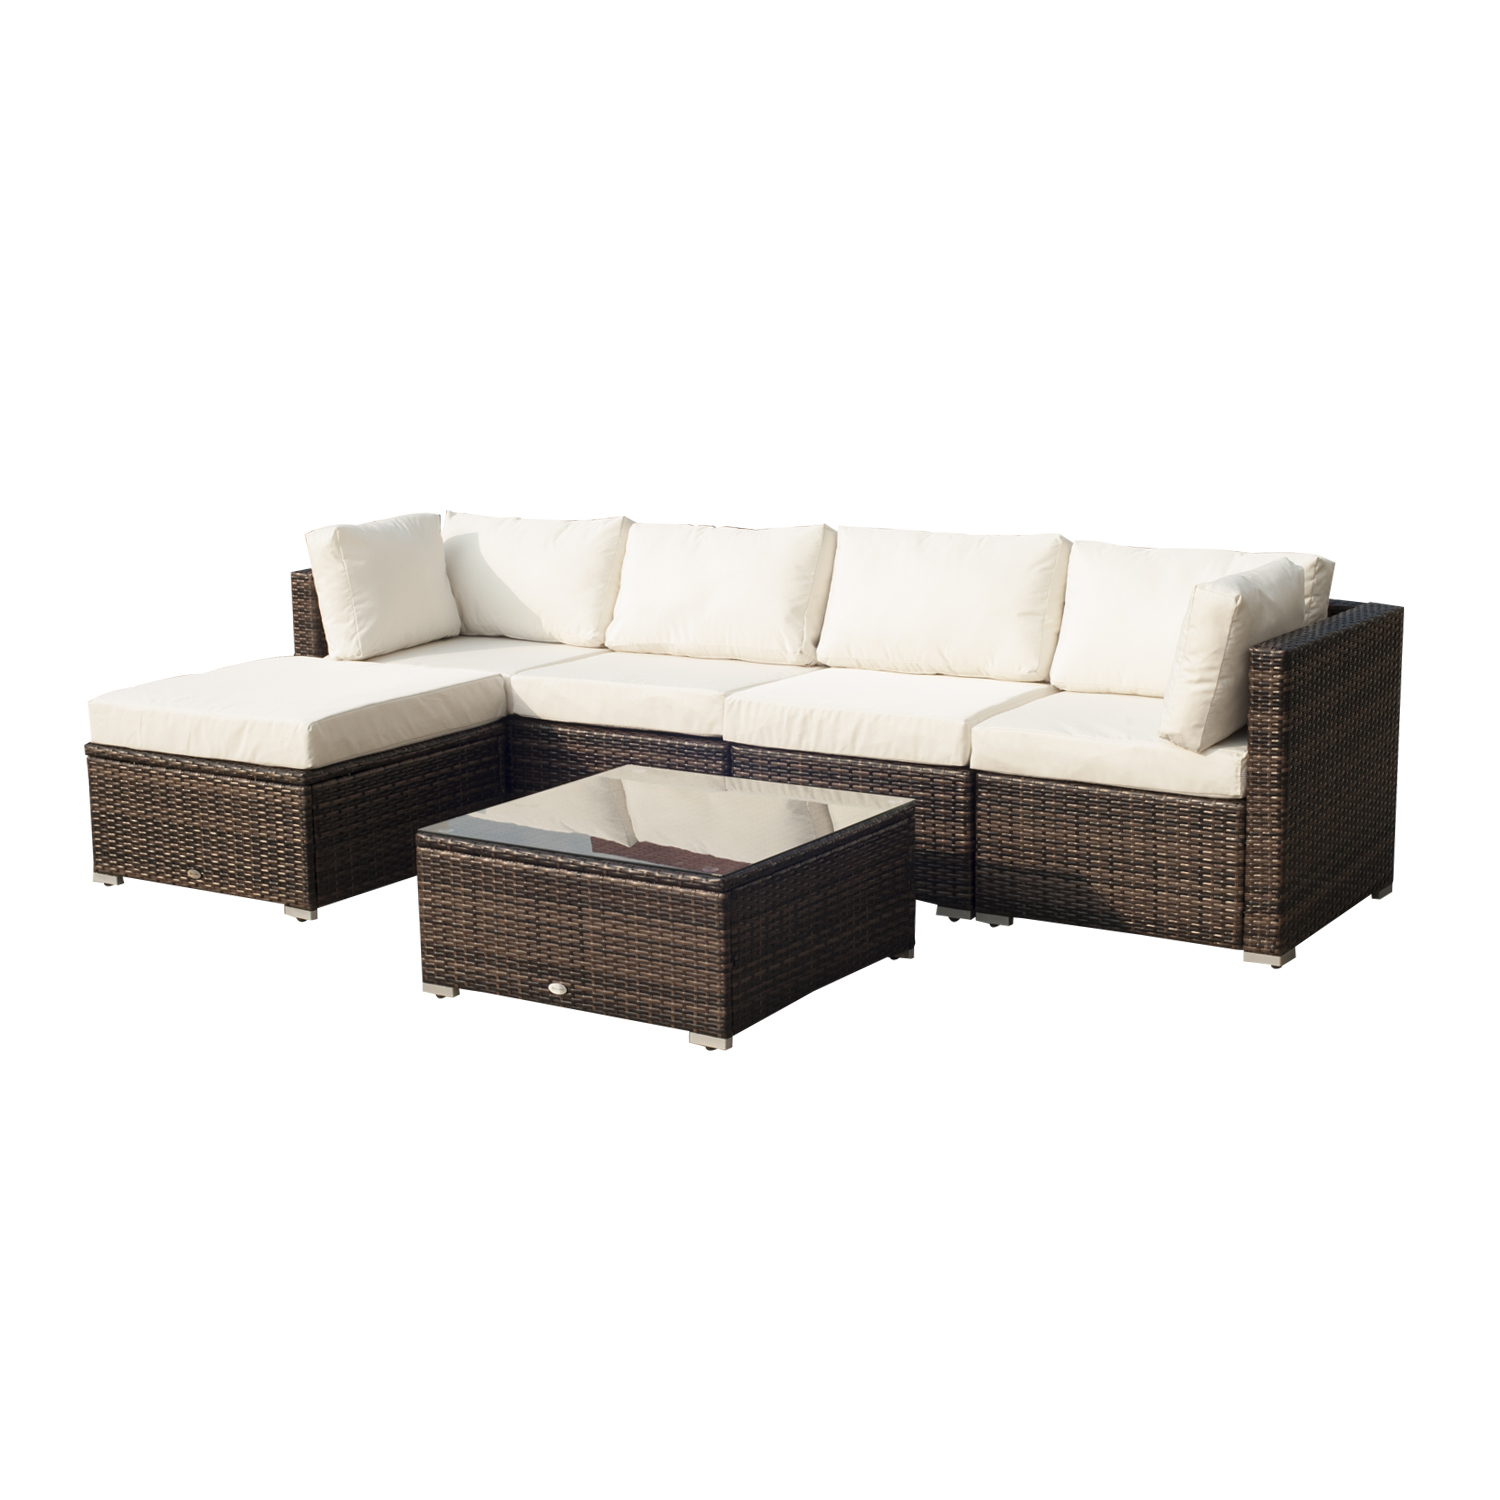 Image of £489.99 Outsunny Rattan Furniture Set, 6 PCs- Brown/Milk White / Garden Patio pcs Wicker Weave Conservatory Sofa Chairs Table Set Brown Aluminium Frame Pieces Chair 841-096 5055974824782